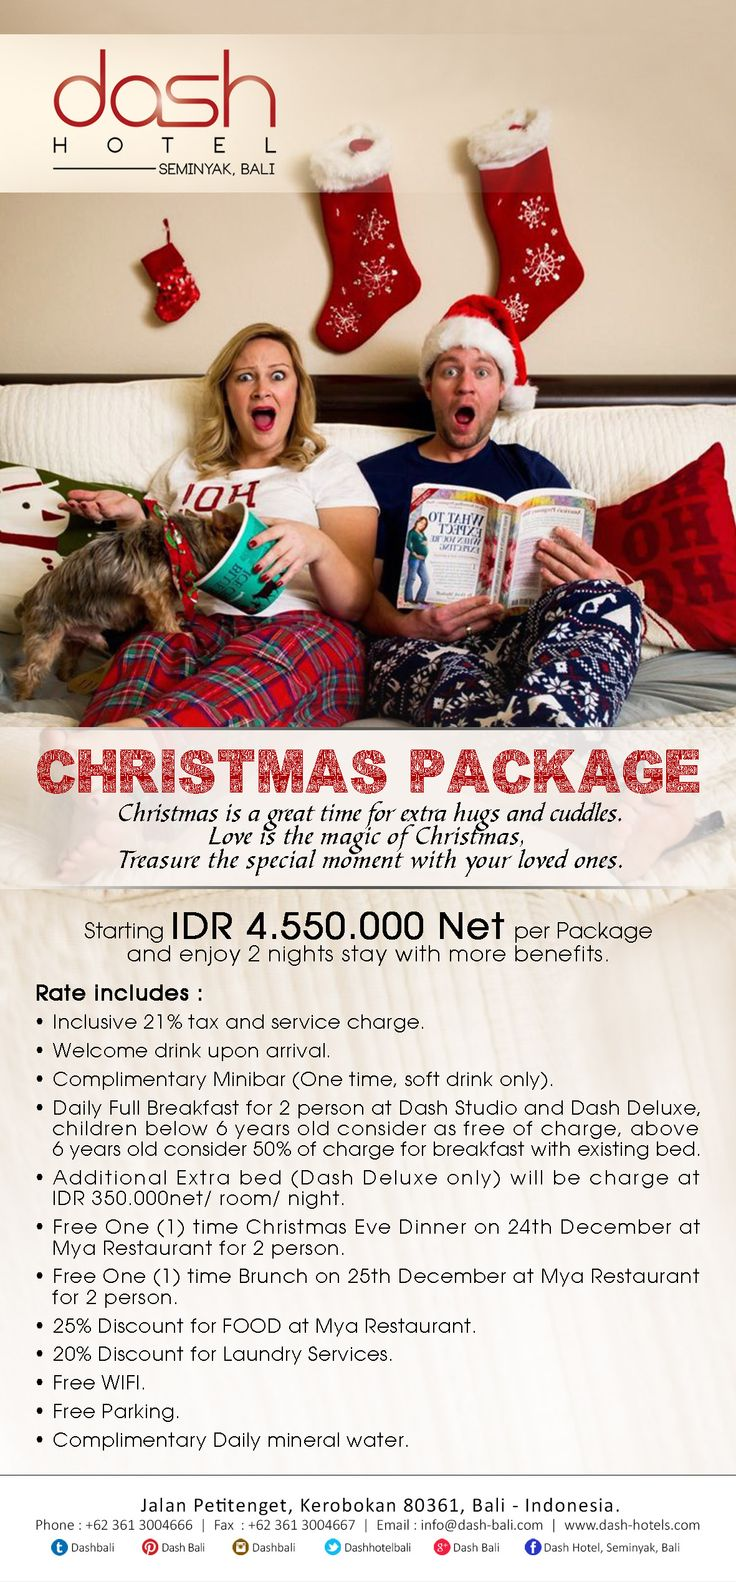 CHRISTMAS PACKAGE!! Starting IDR. 4.550.000 Net per Package and enjoy 2 nights stay with more benefits.  #prepare #holiday #with #christmas #package #packagedeal #stay #more #benefits #only #dashbali #seminyak #petitenget #bali #indonesia